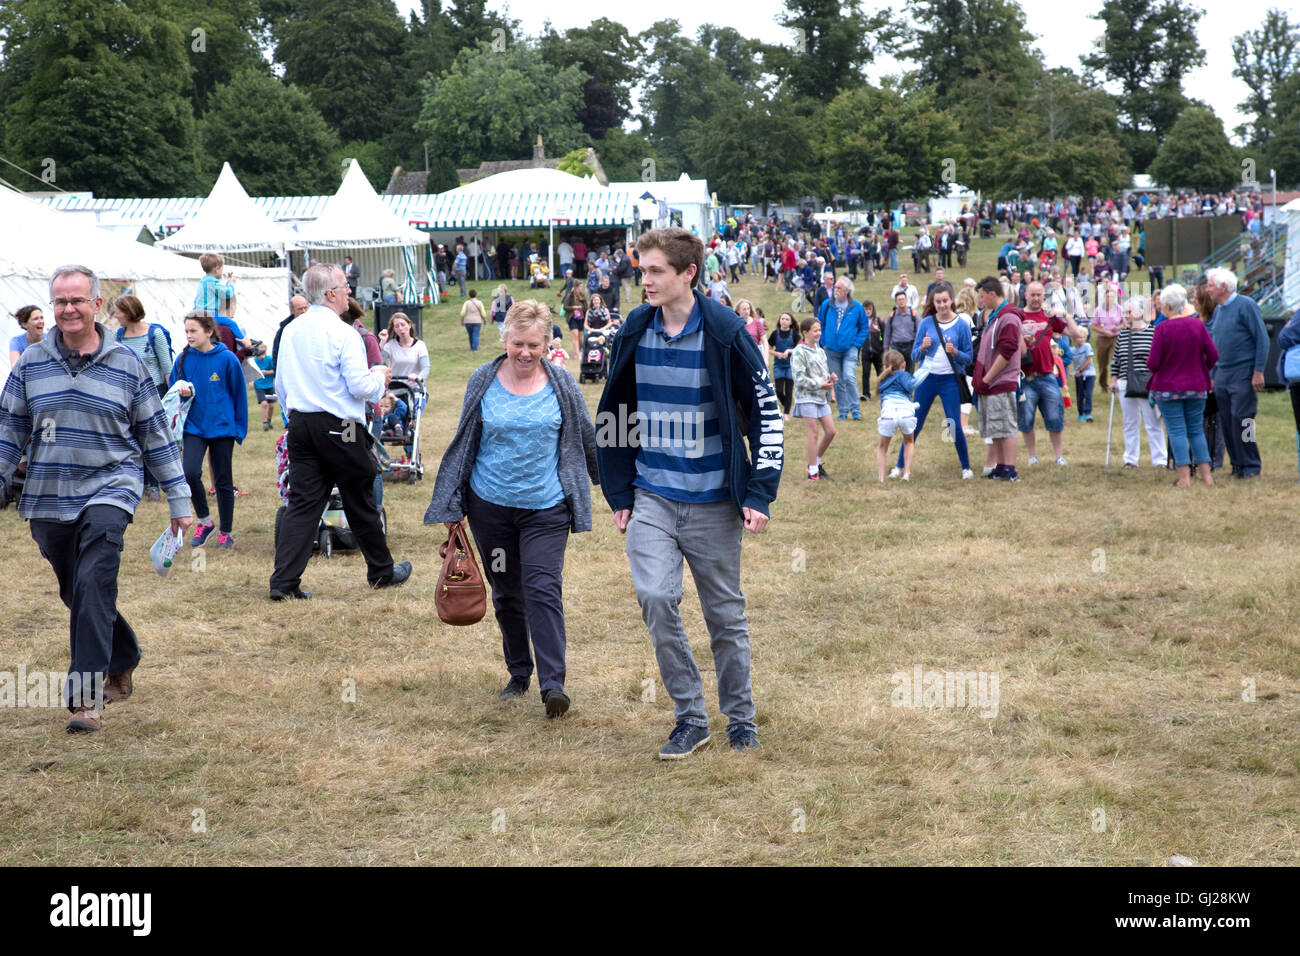 Visitors streaming in to Countryfile Live on first day Blenheim UK - Stock Image